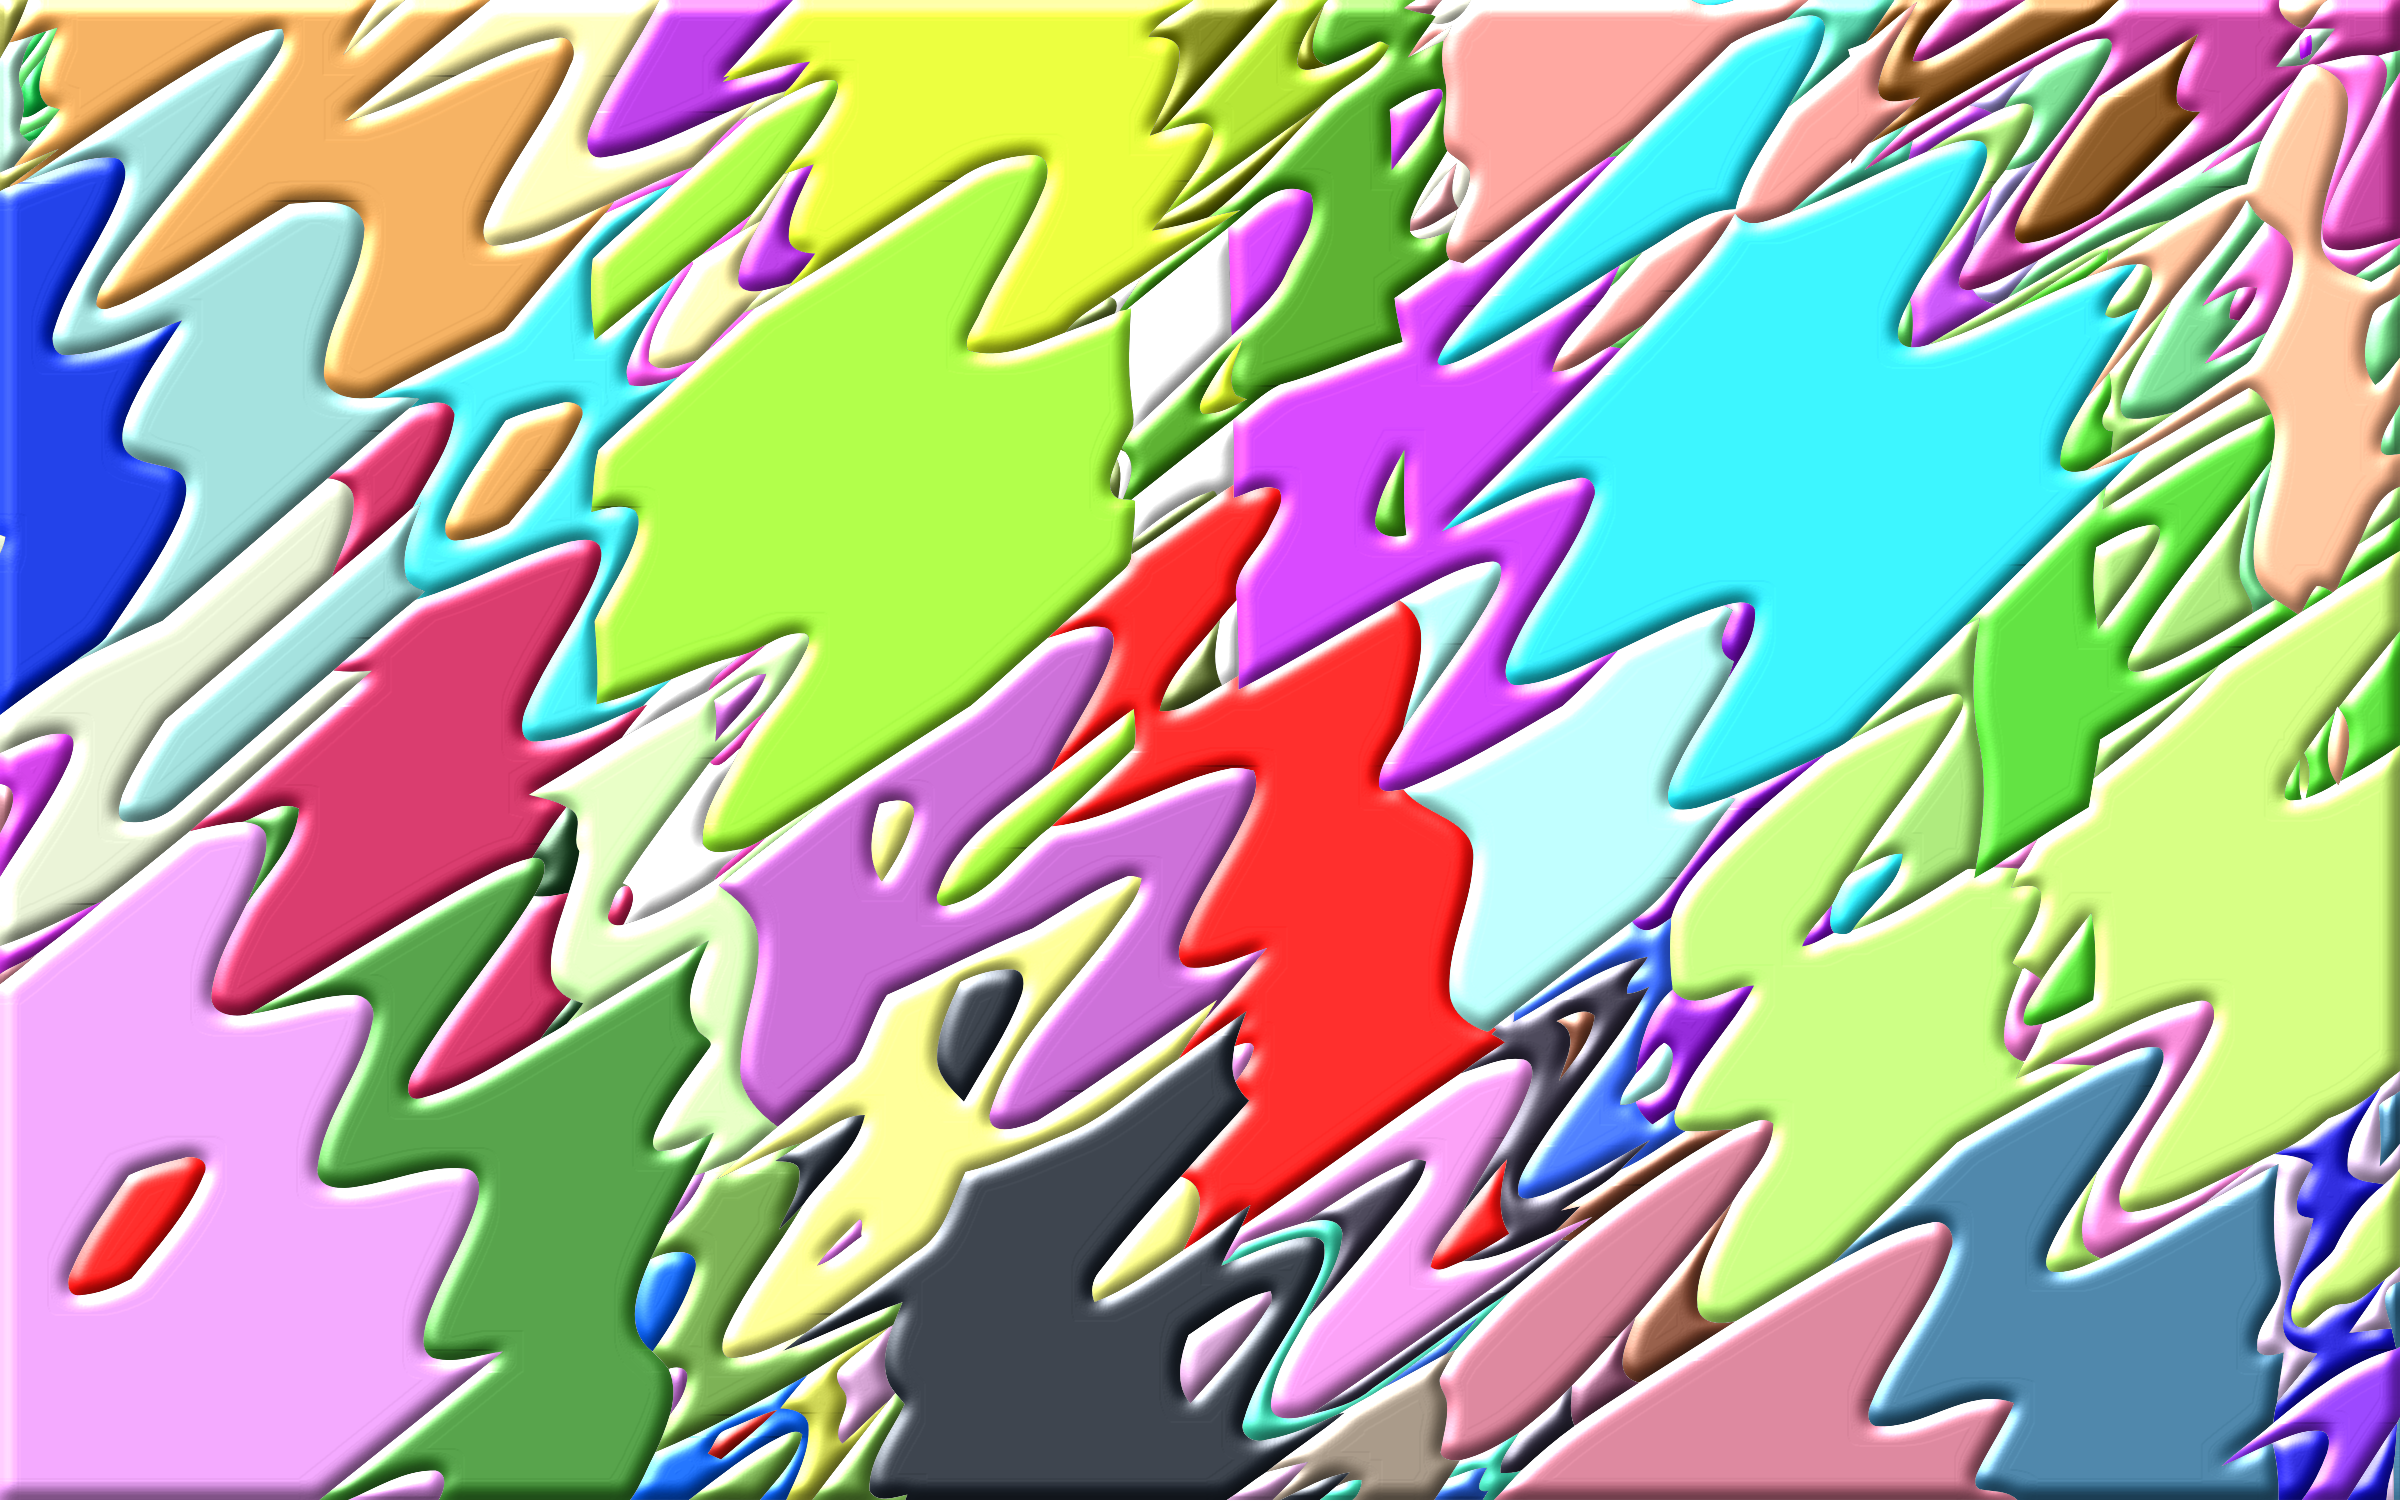 Random shapes background 2 by Firkin